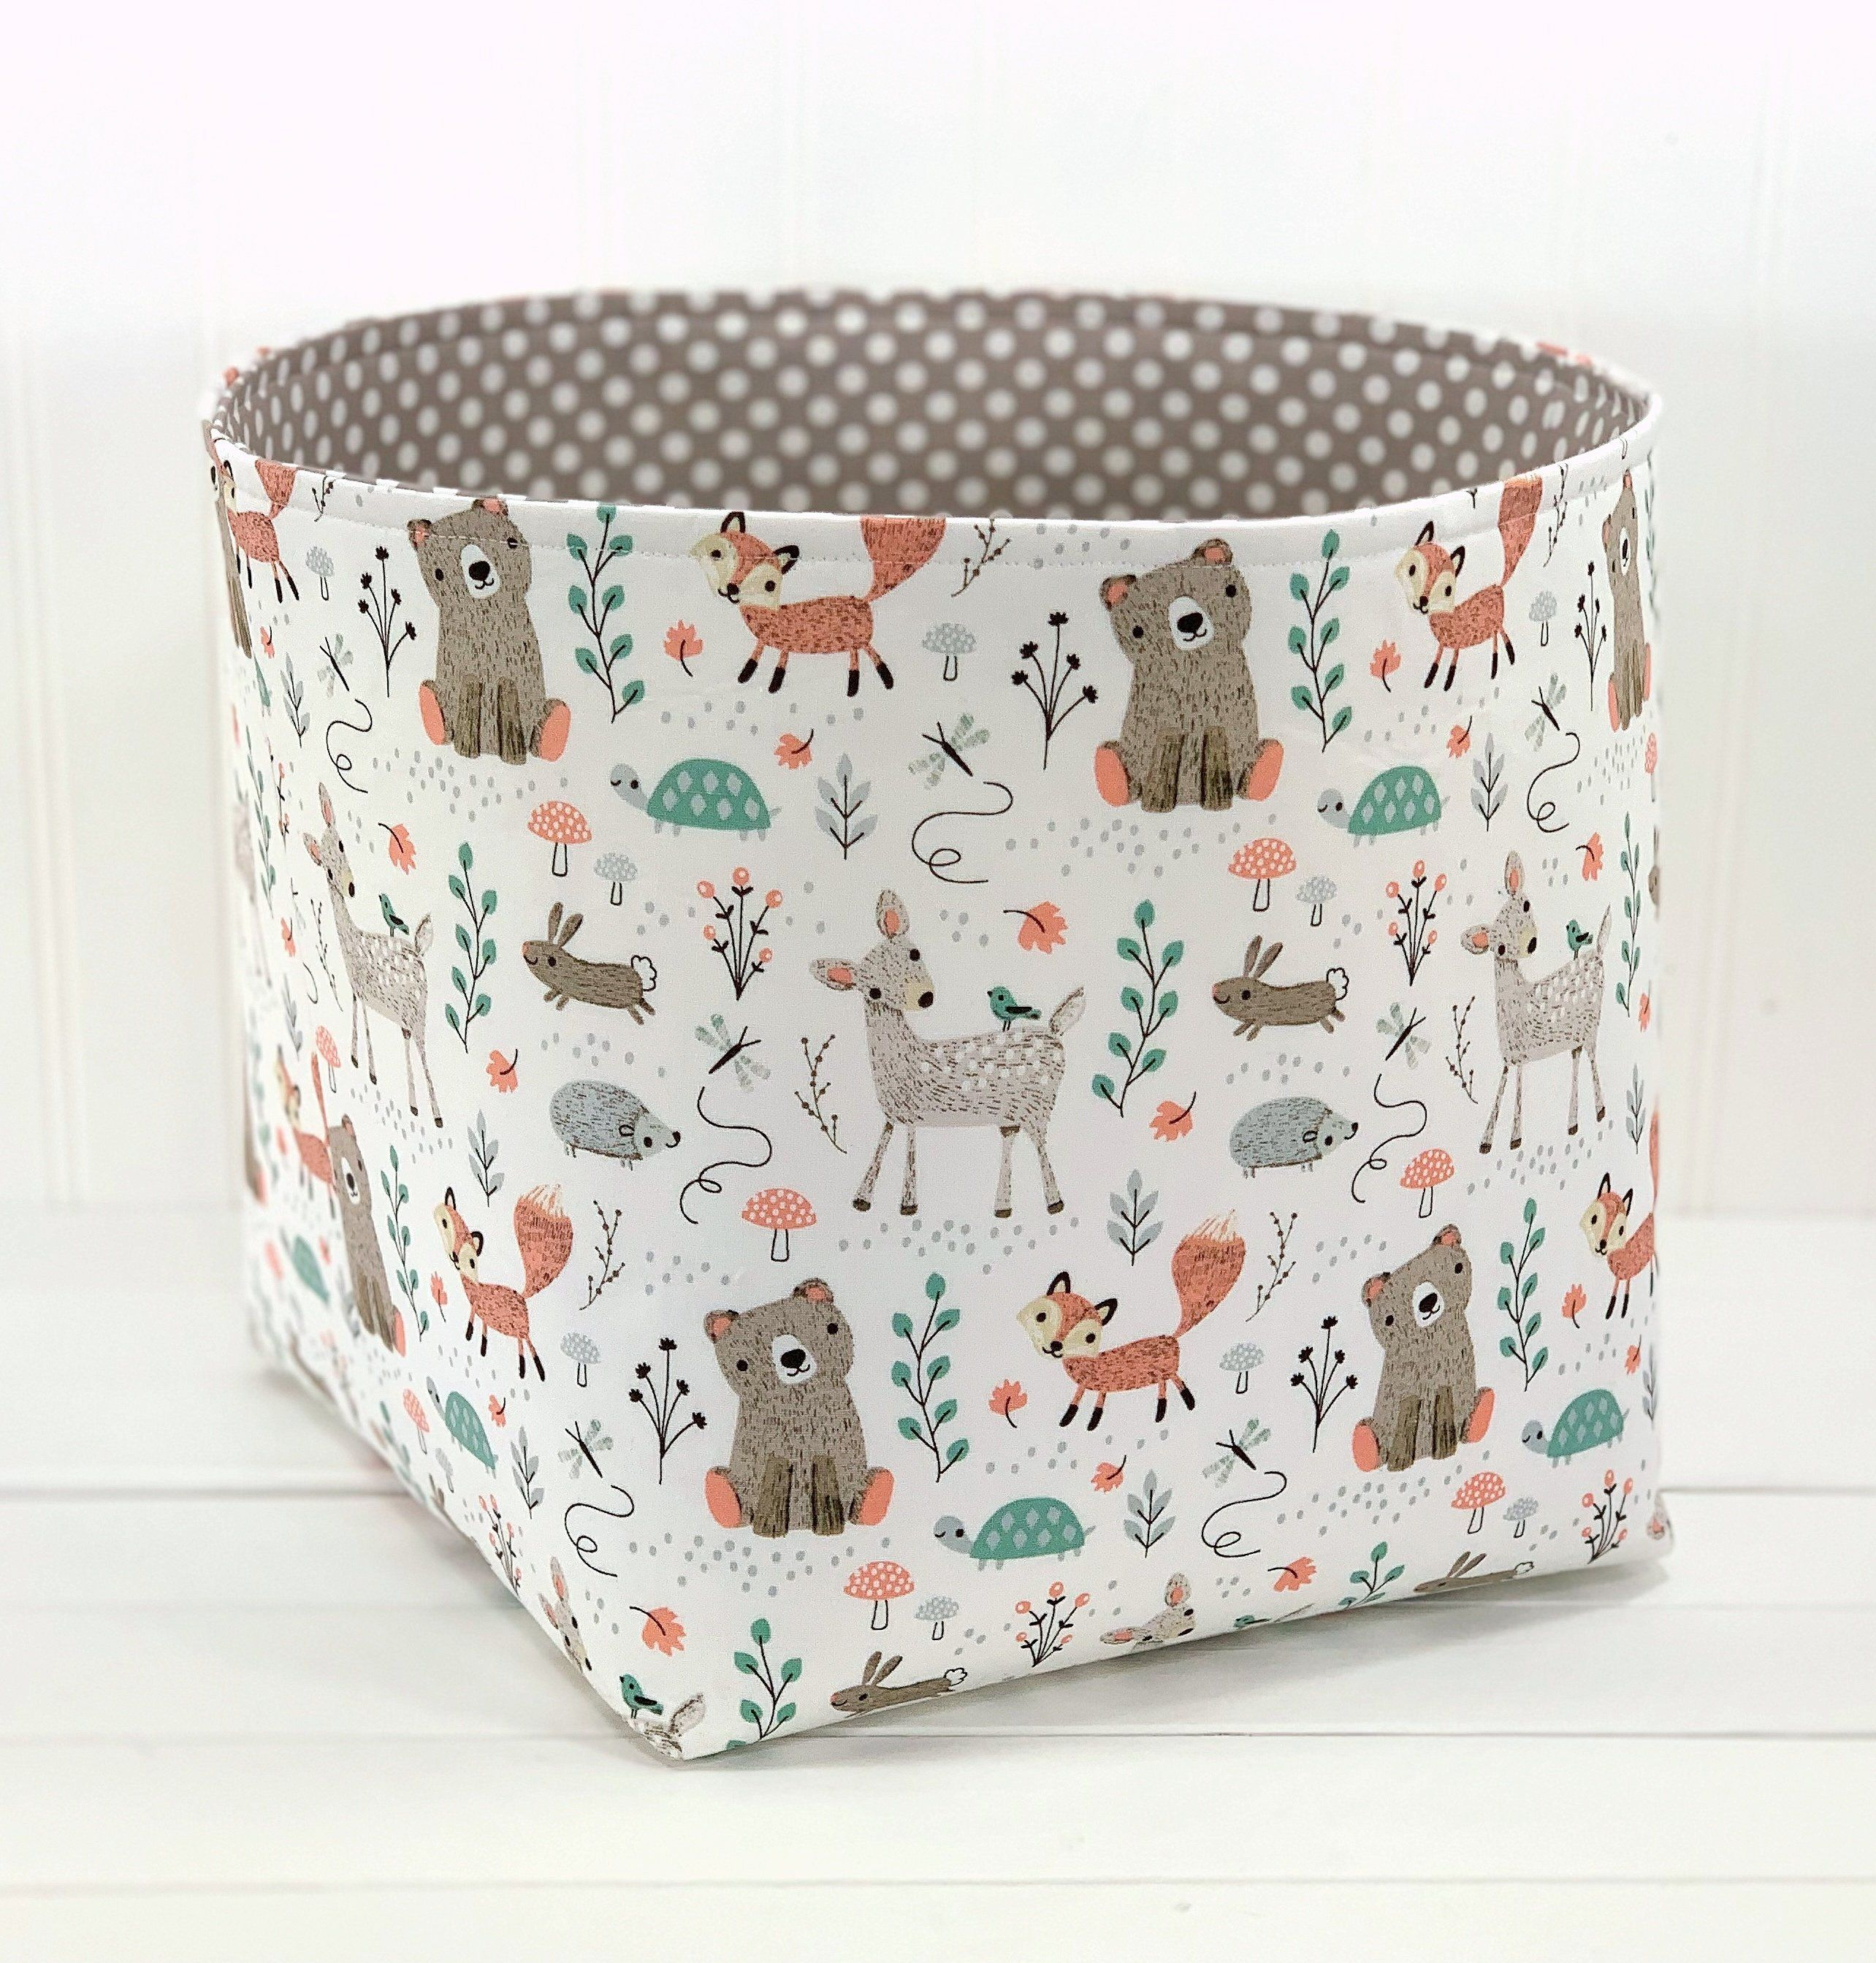 Woodland Nursery Fabric Storage Basket Fox Nursery Decor Organizer Storage Bin Mint And Gray De Fabric Storage Baskets Fabric Storage Bins Fabric Storage